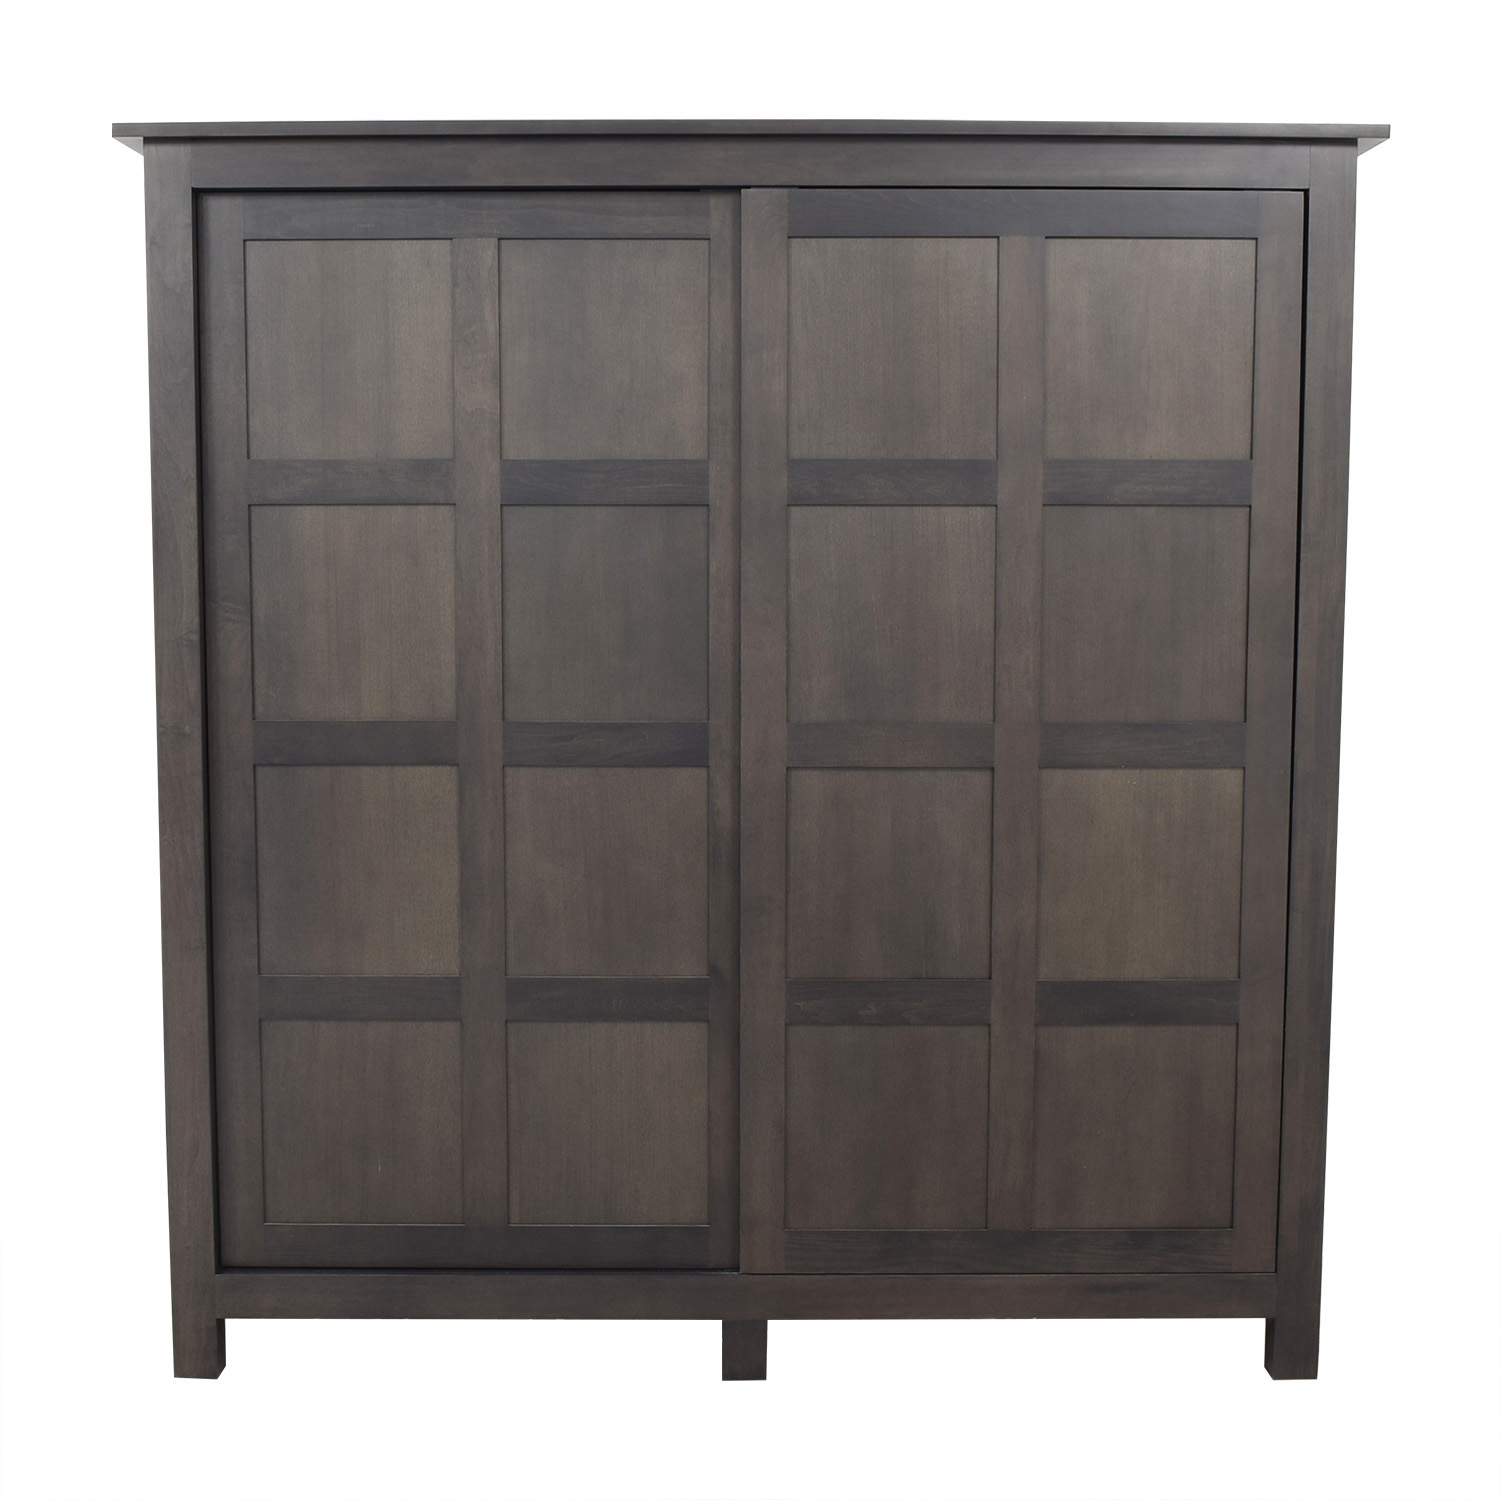 Room & Board Room & Board Bennett Armoire with Wine Rack & Four Drawers coupon